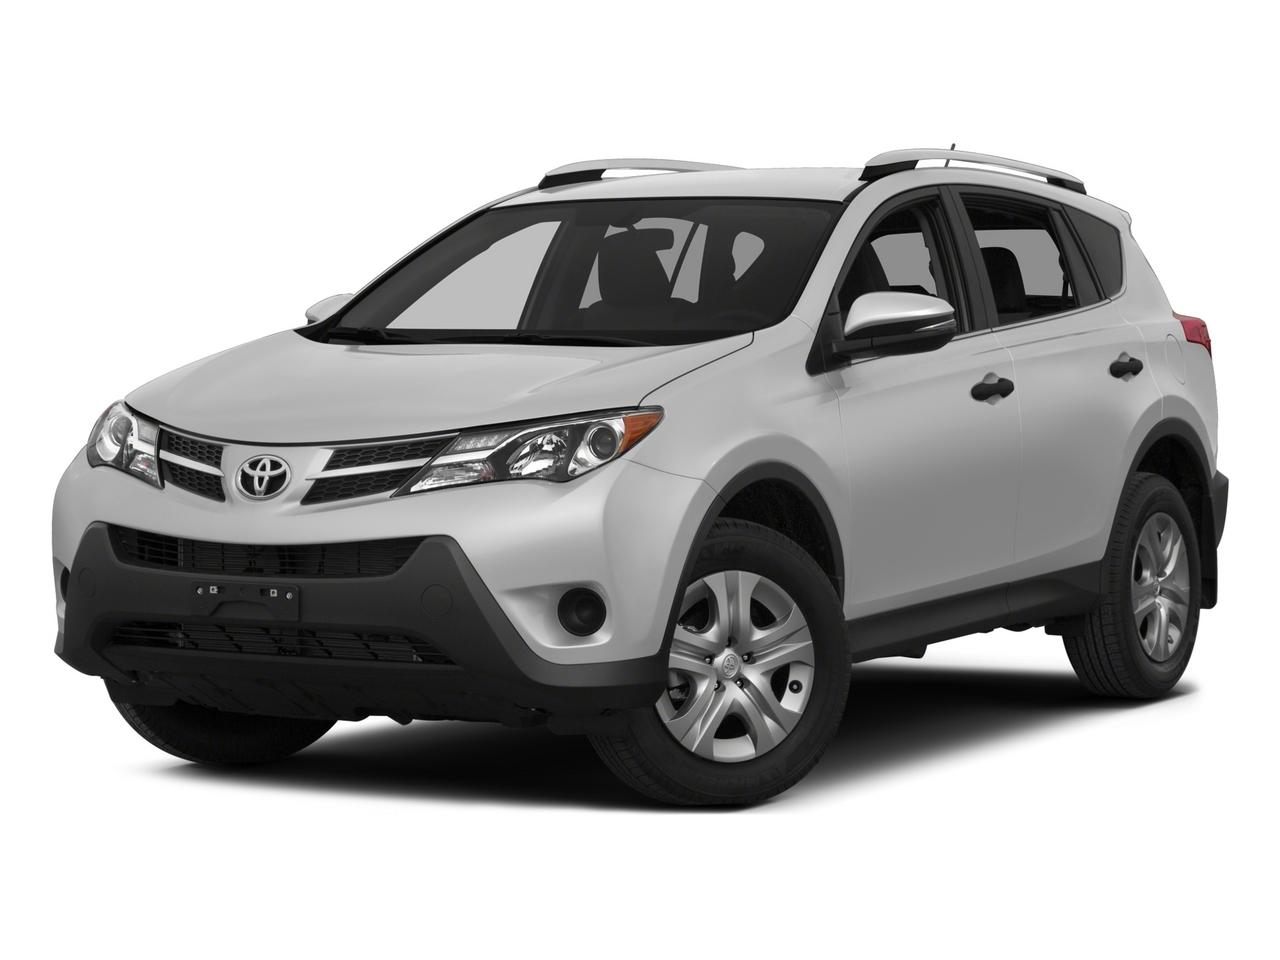 2015 Toyota RAV4 Vehicle Photo in Ocala, FL 34474